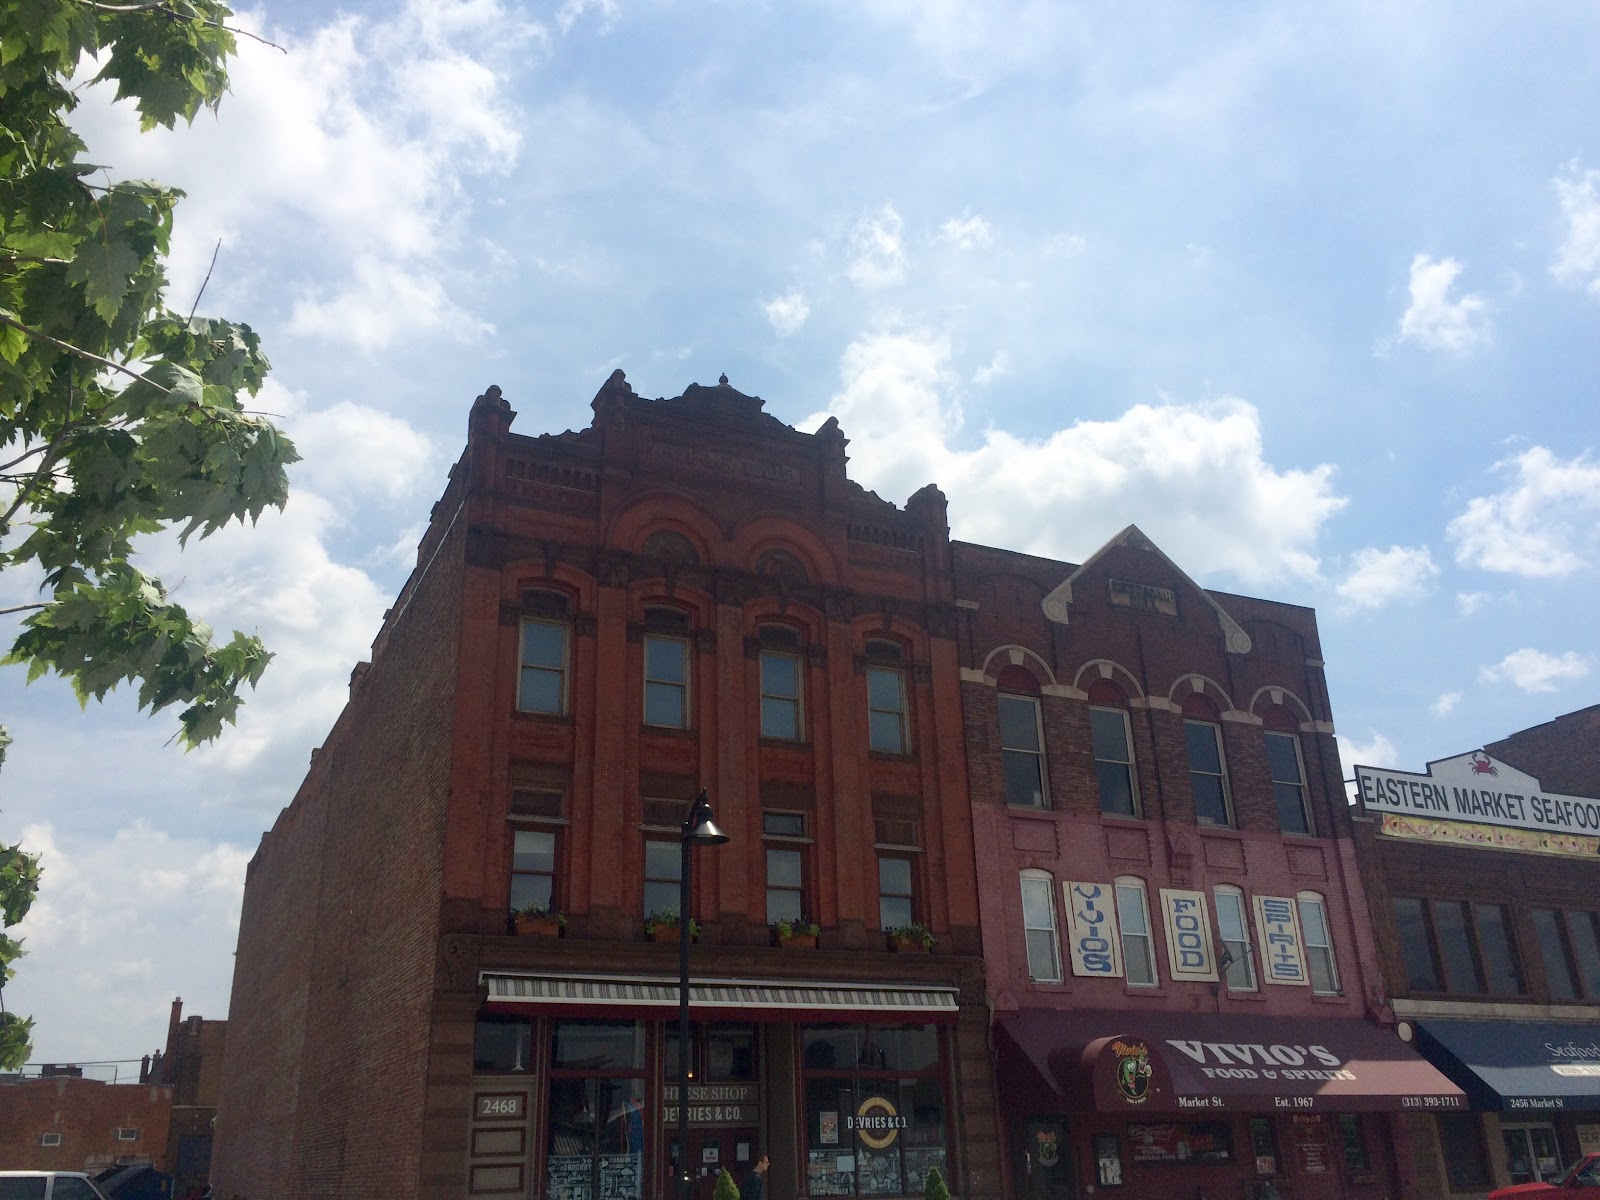 DeVries & Co. 1887 offers the nostalgia that visitors desire when exploring all that is historic in Eastern Market